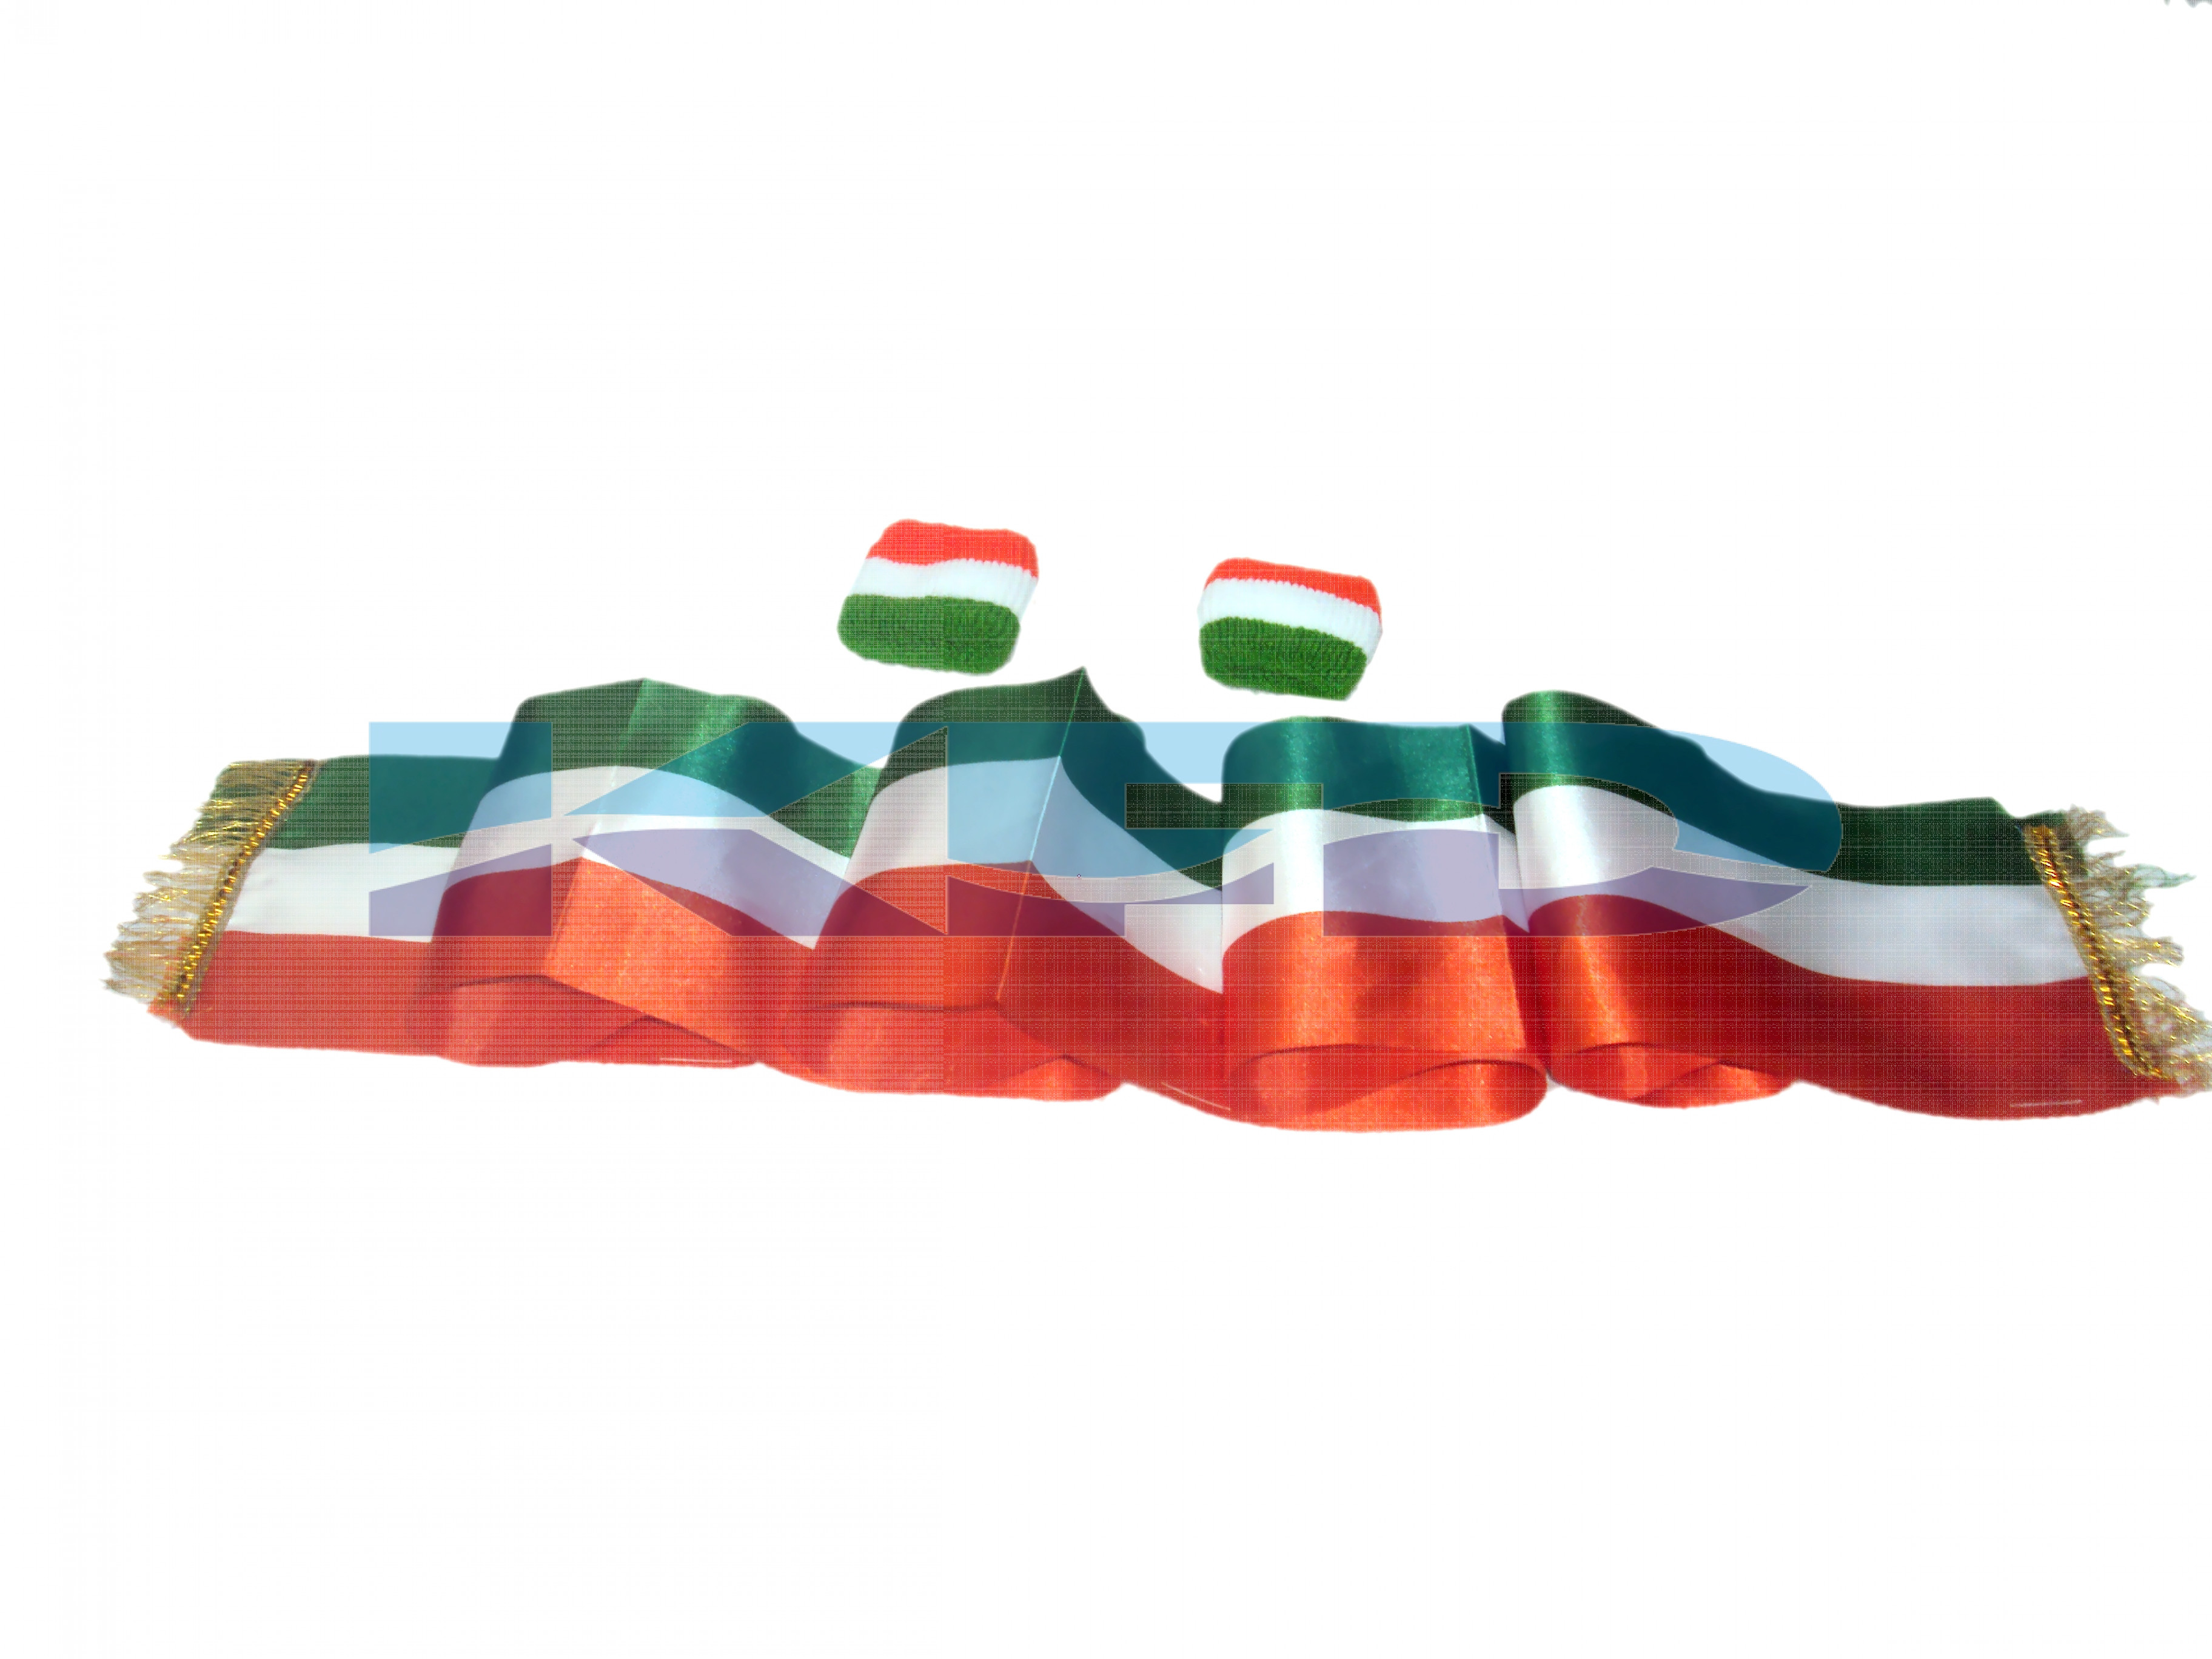 Tri Color Stall/Wrist Band 6 Pieces Set For Independence Day/Republic Day/School Annual function/Theme Party/Competition/Stage Shows/Birthday Party Dress(6 pcs set)